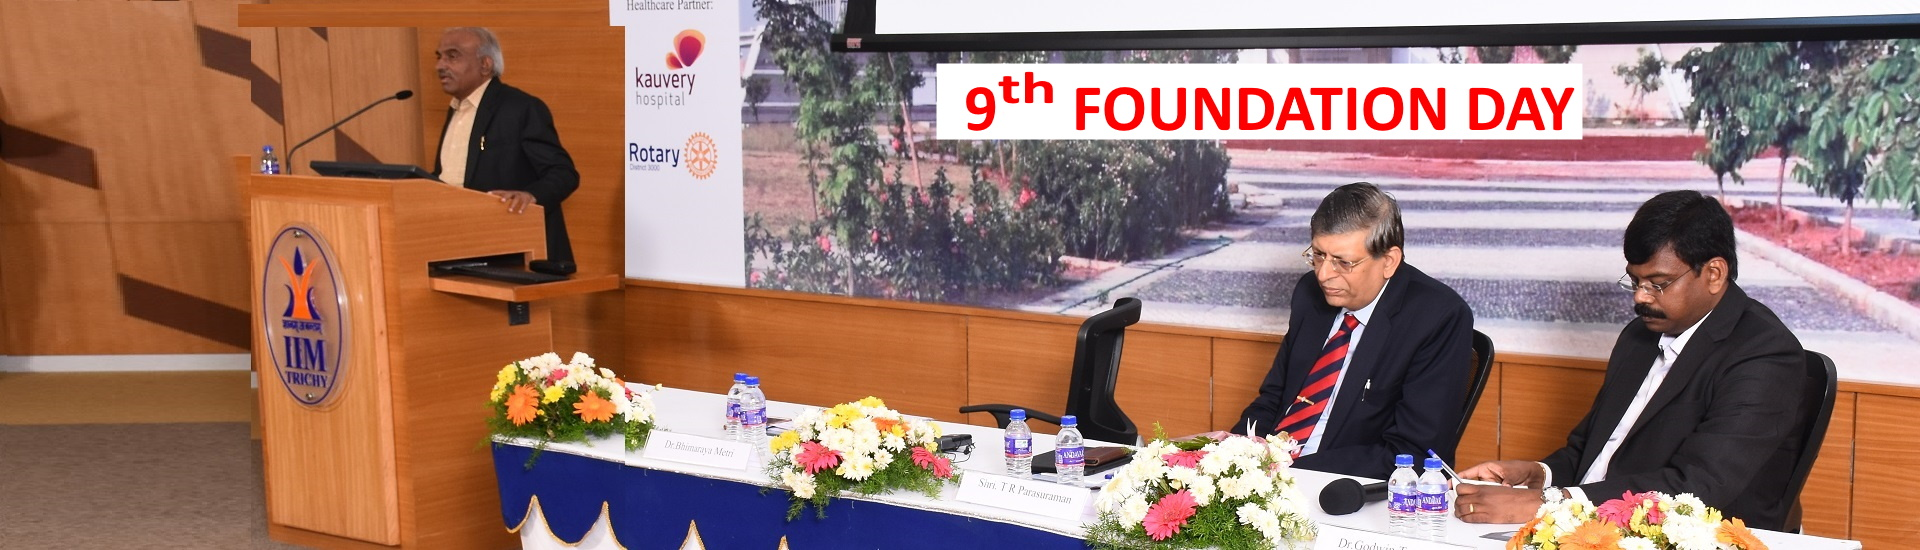 9th Foundation day